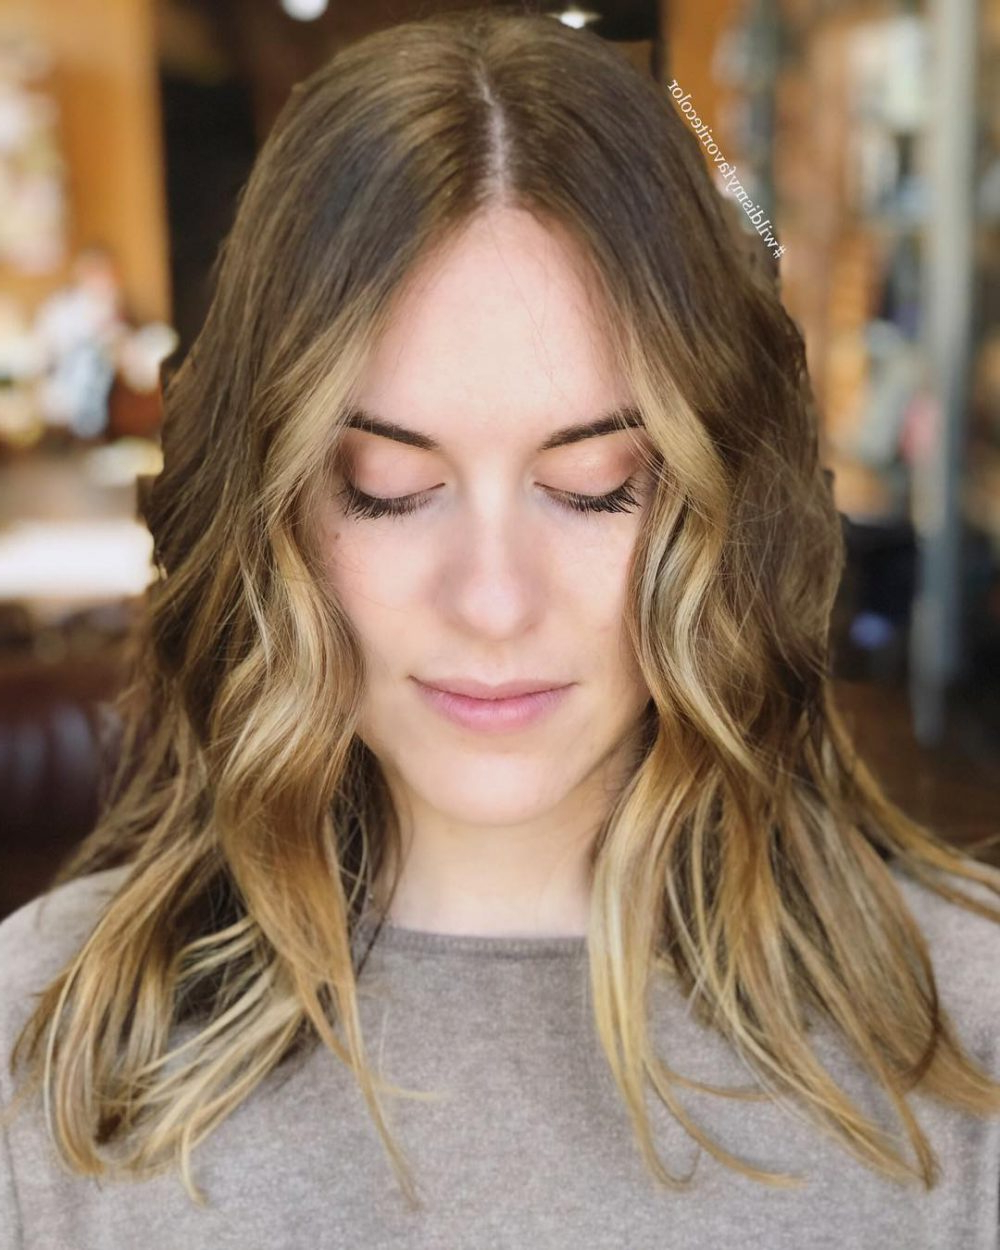 17 Flattering Medium Hairstyles For Round Faces In 2019 In Newest Medium Hairstyles For A Round Face (Gallery 1 of 20)